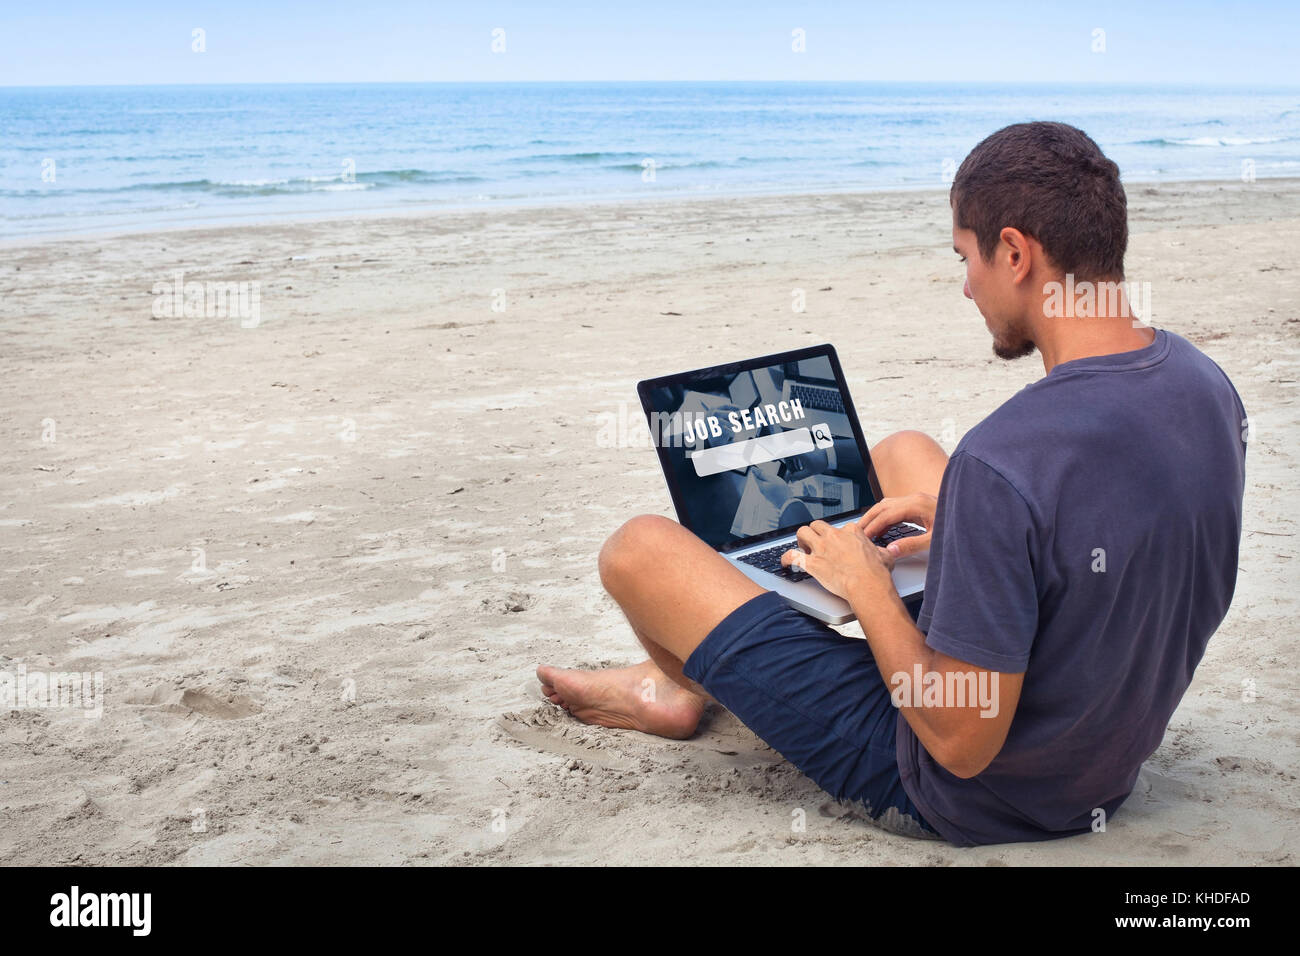 freelancer looking for work online, job search on internet, man sitting on the beach with laptop computer Stock Photo